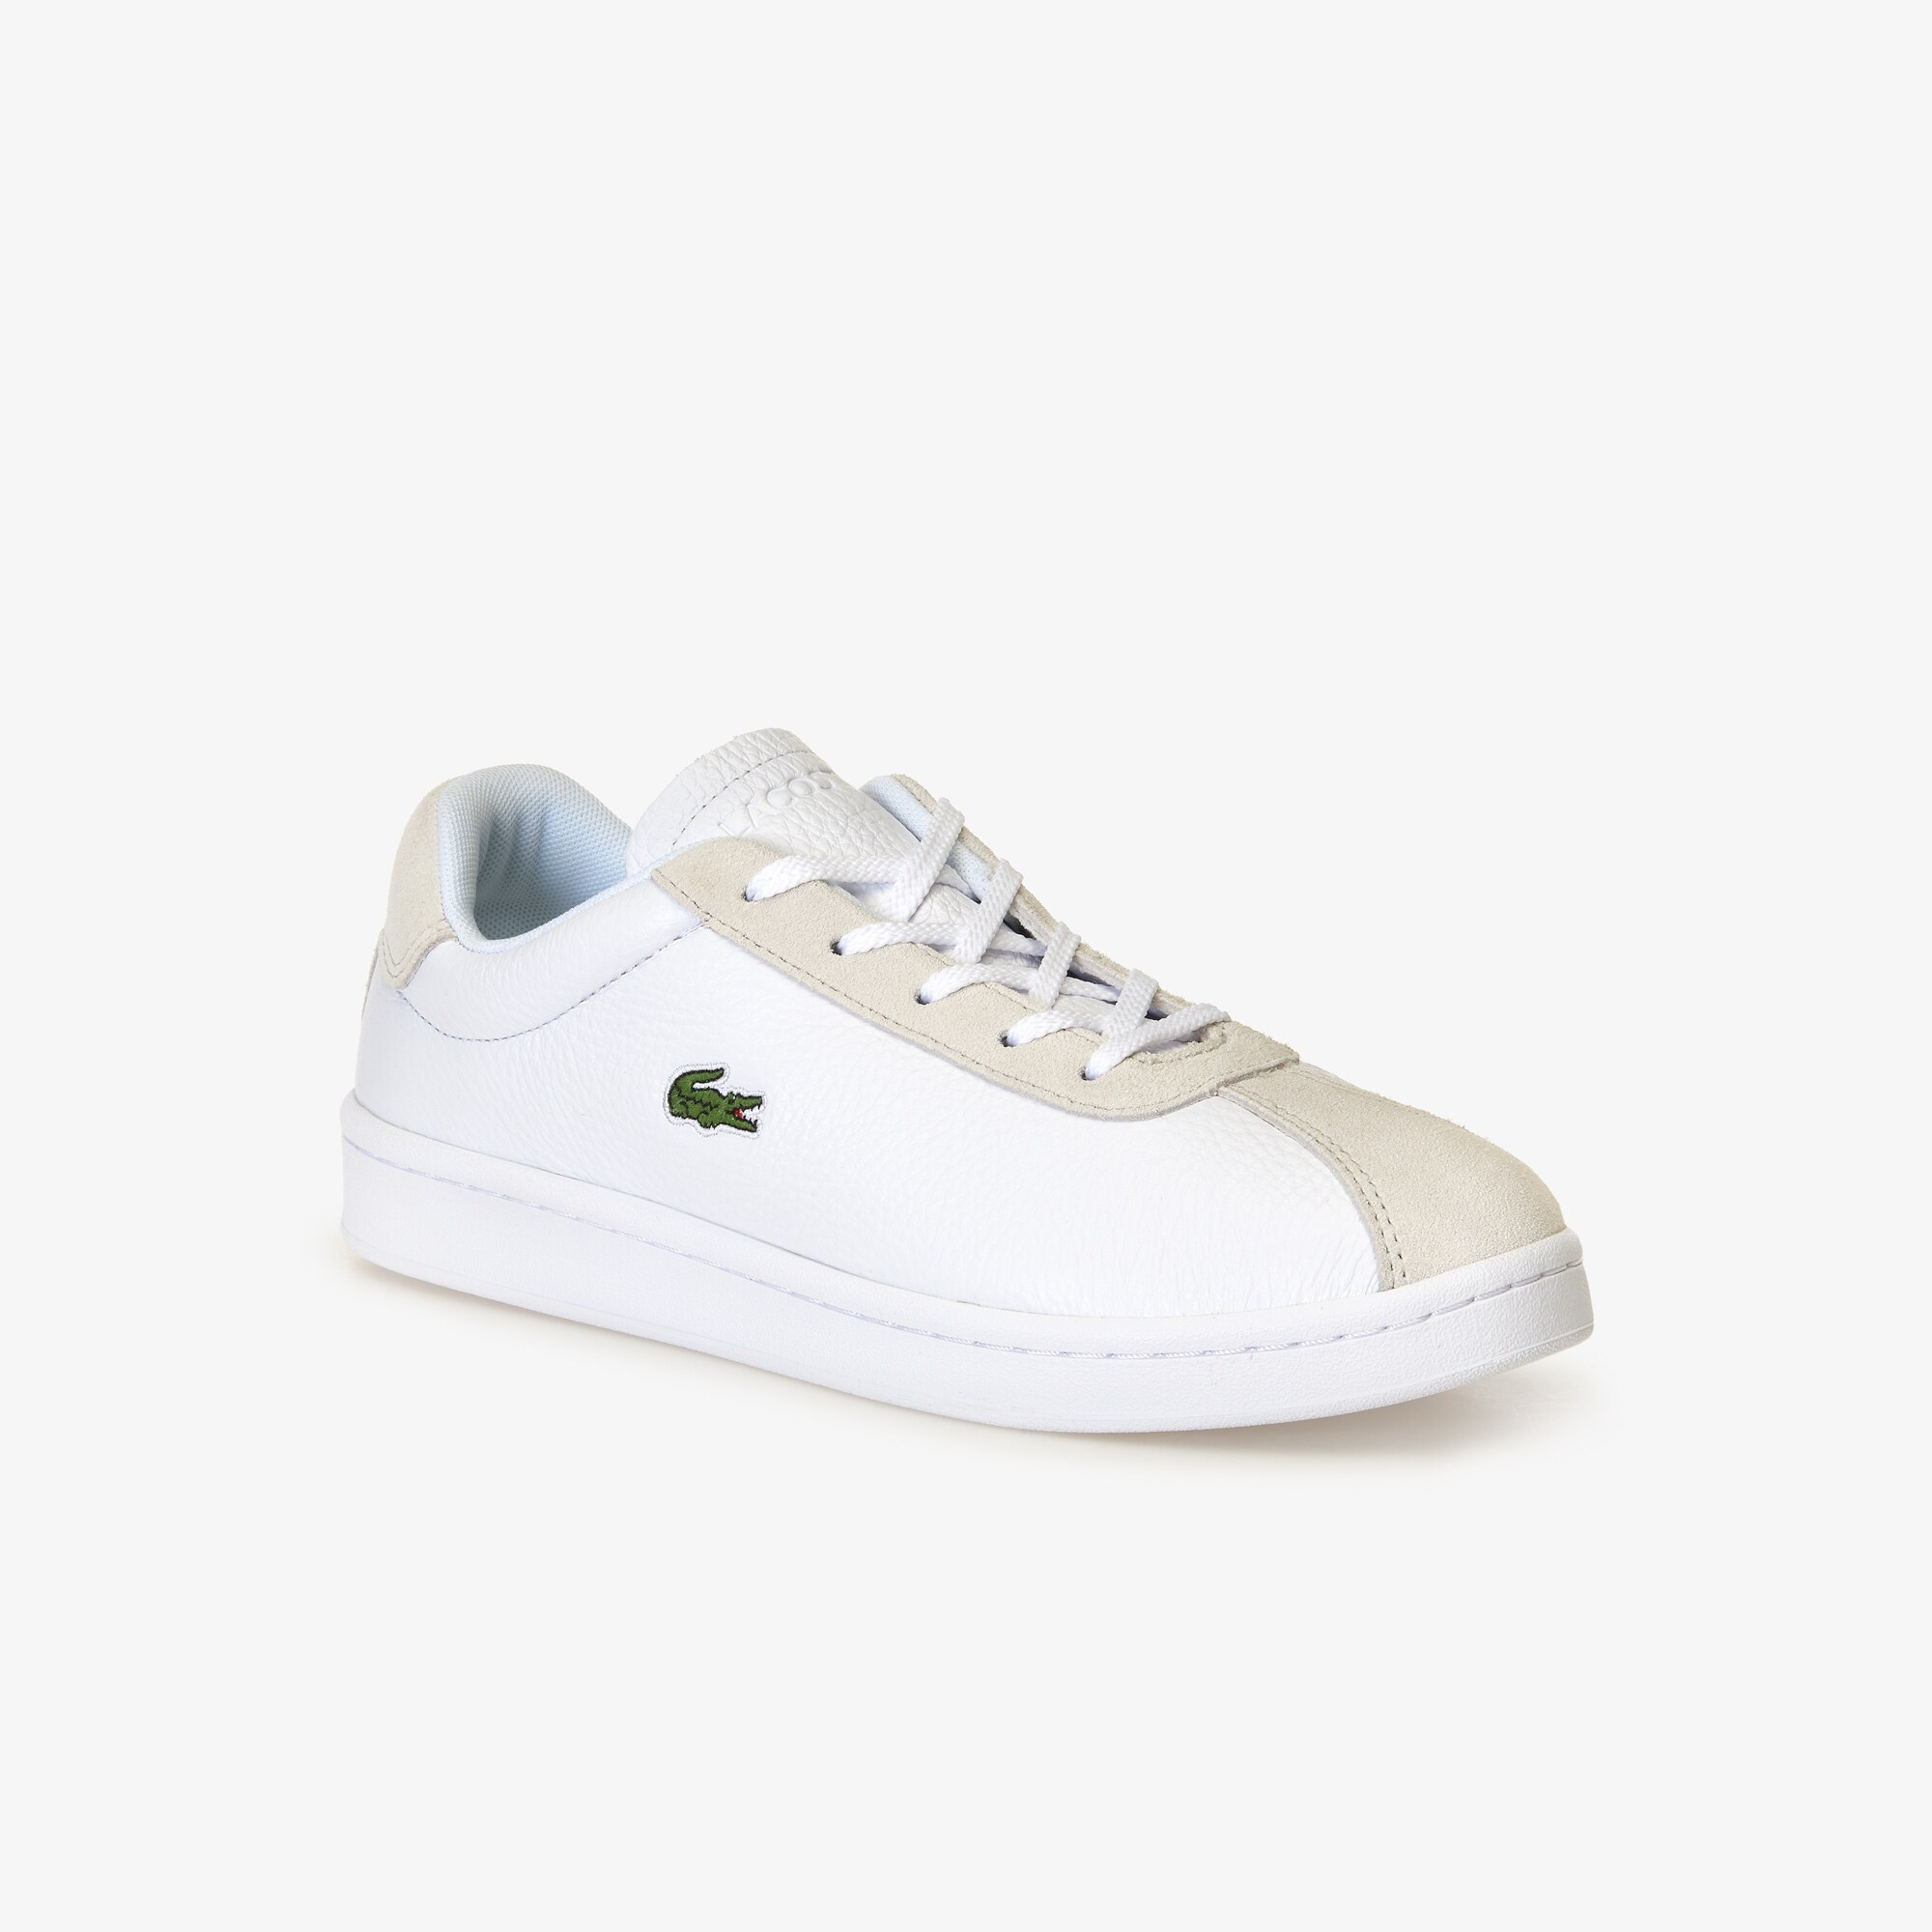 4b7468988556 All Shoes | LACOSTE